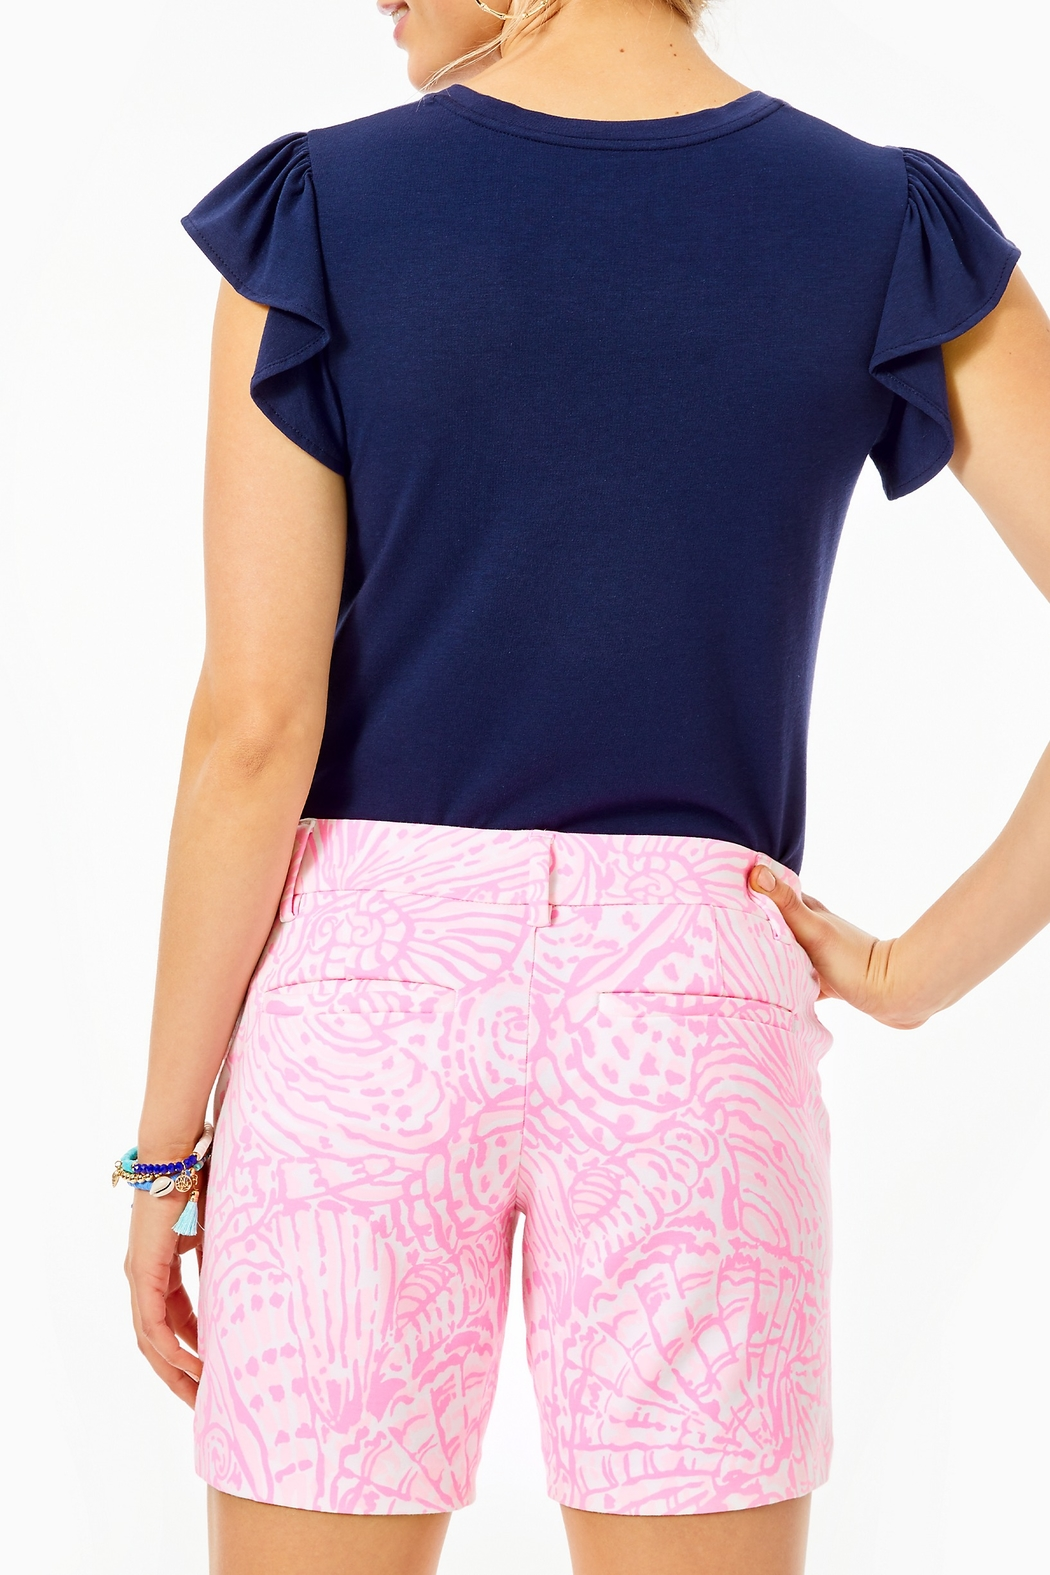 Lilly Pulitzer  Jayne Knit Short - Side Cropped Image